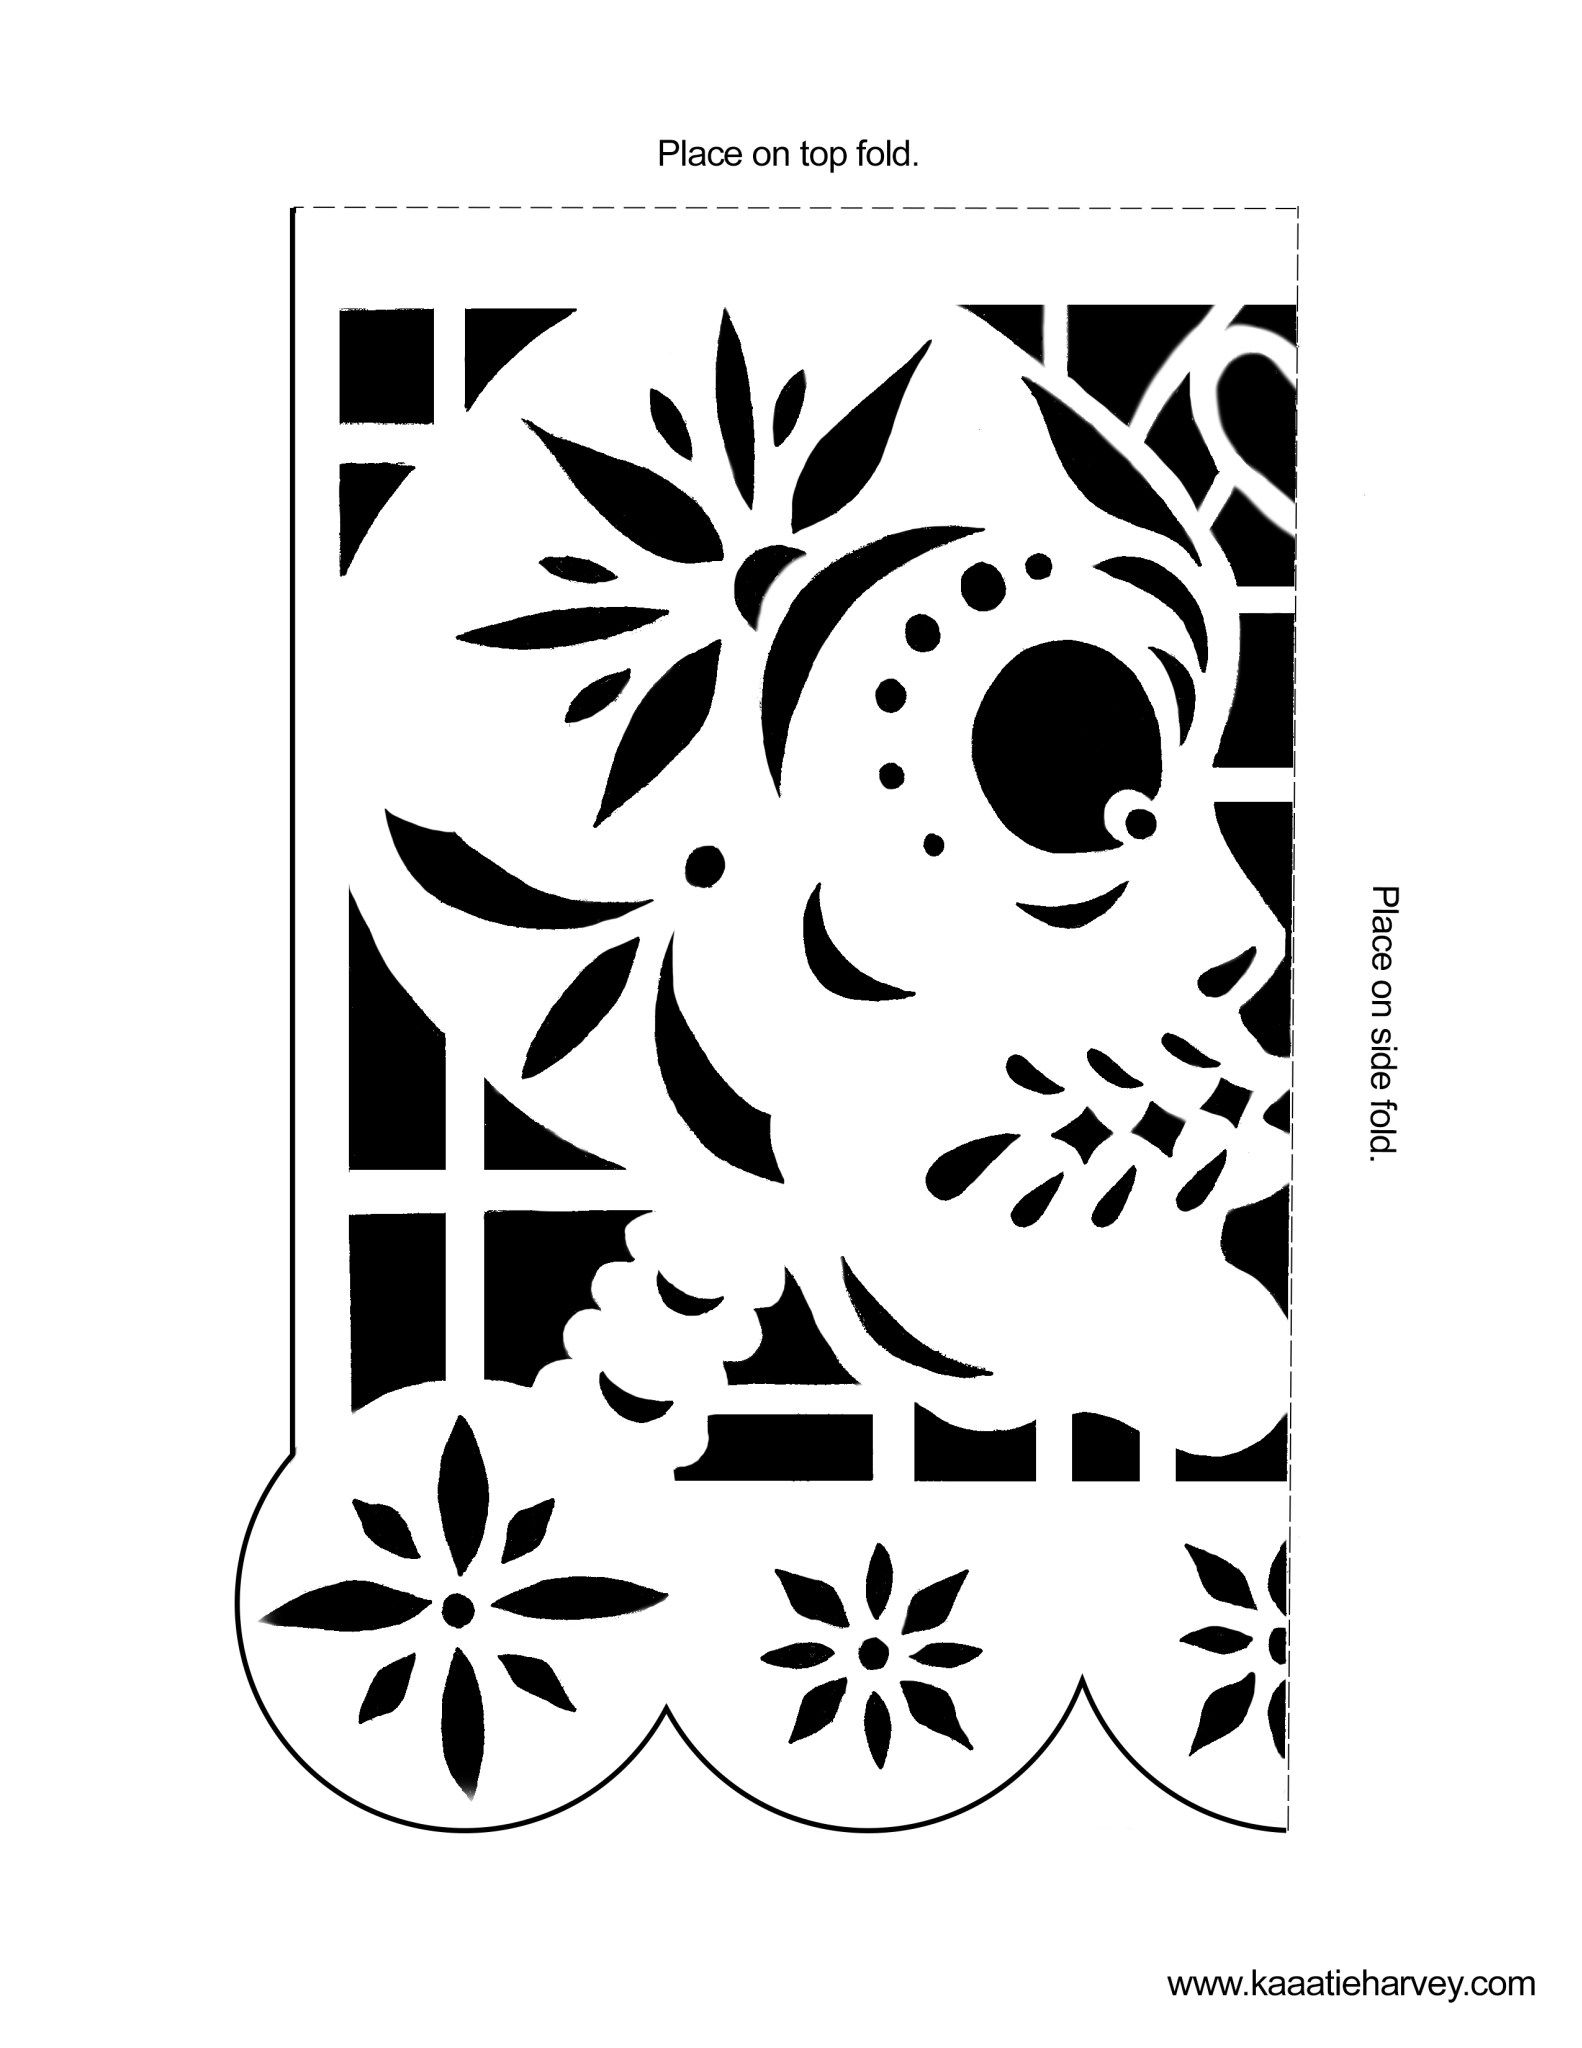 graphic regarding Papel Picado Template Printable called Picture final result for papel picado kissing skull template All